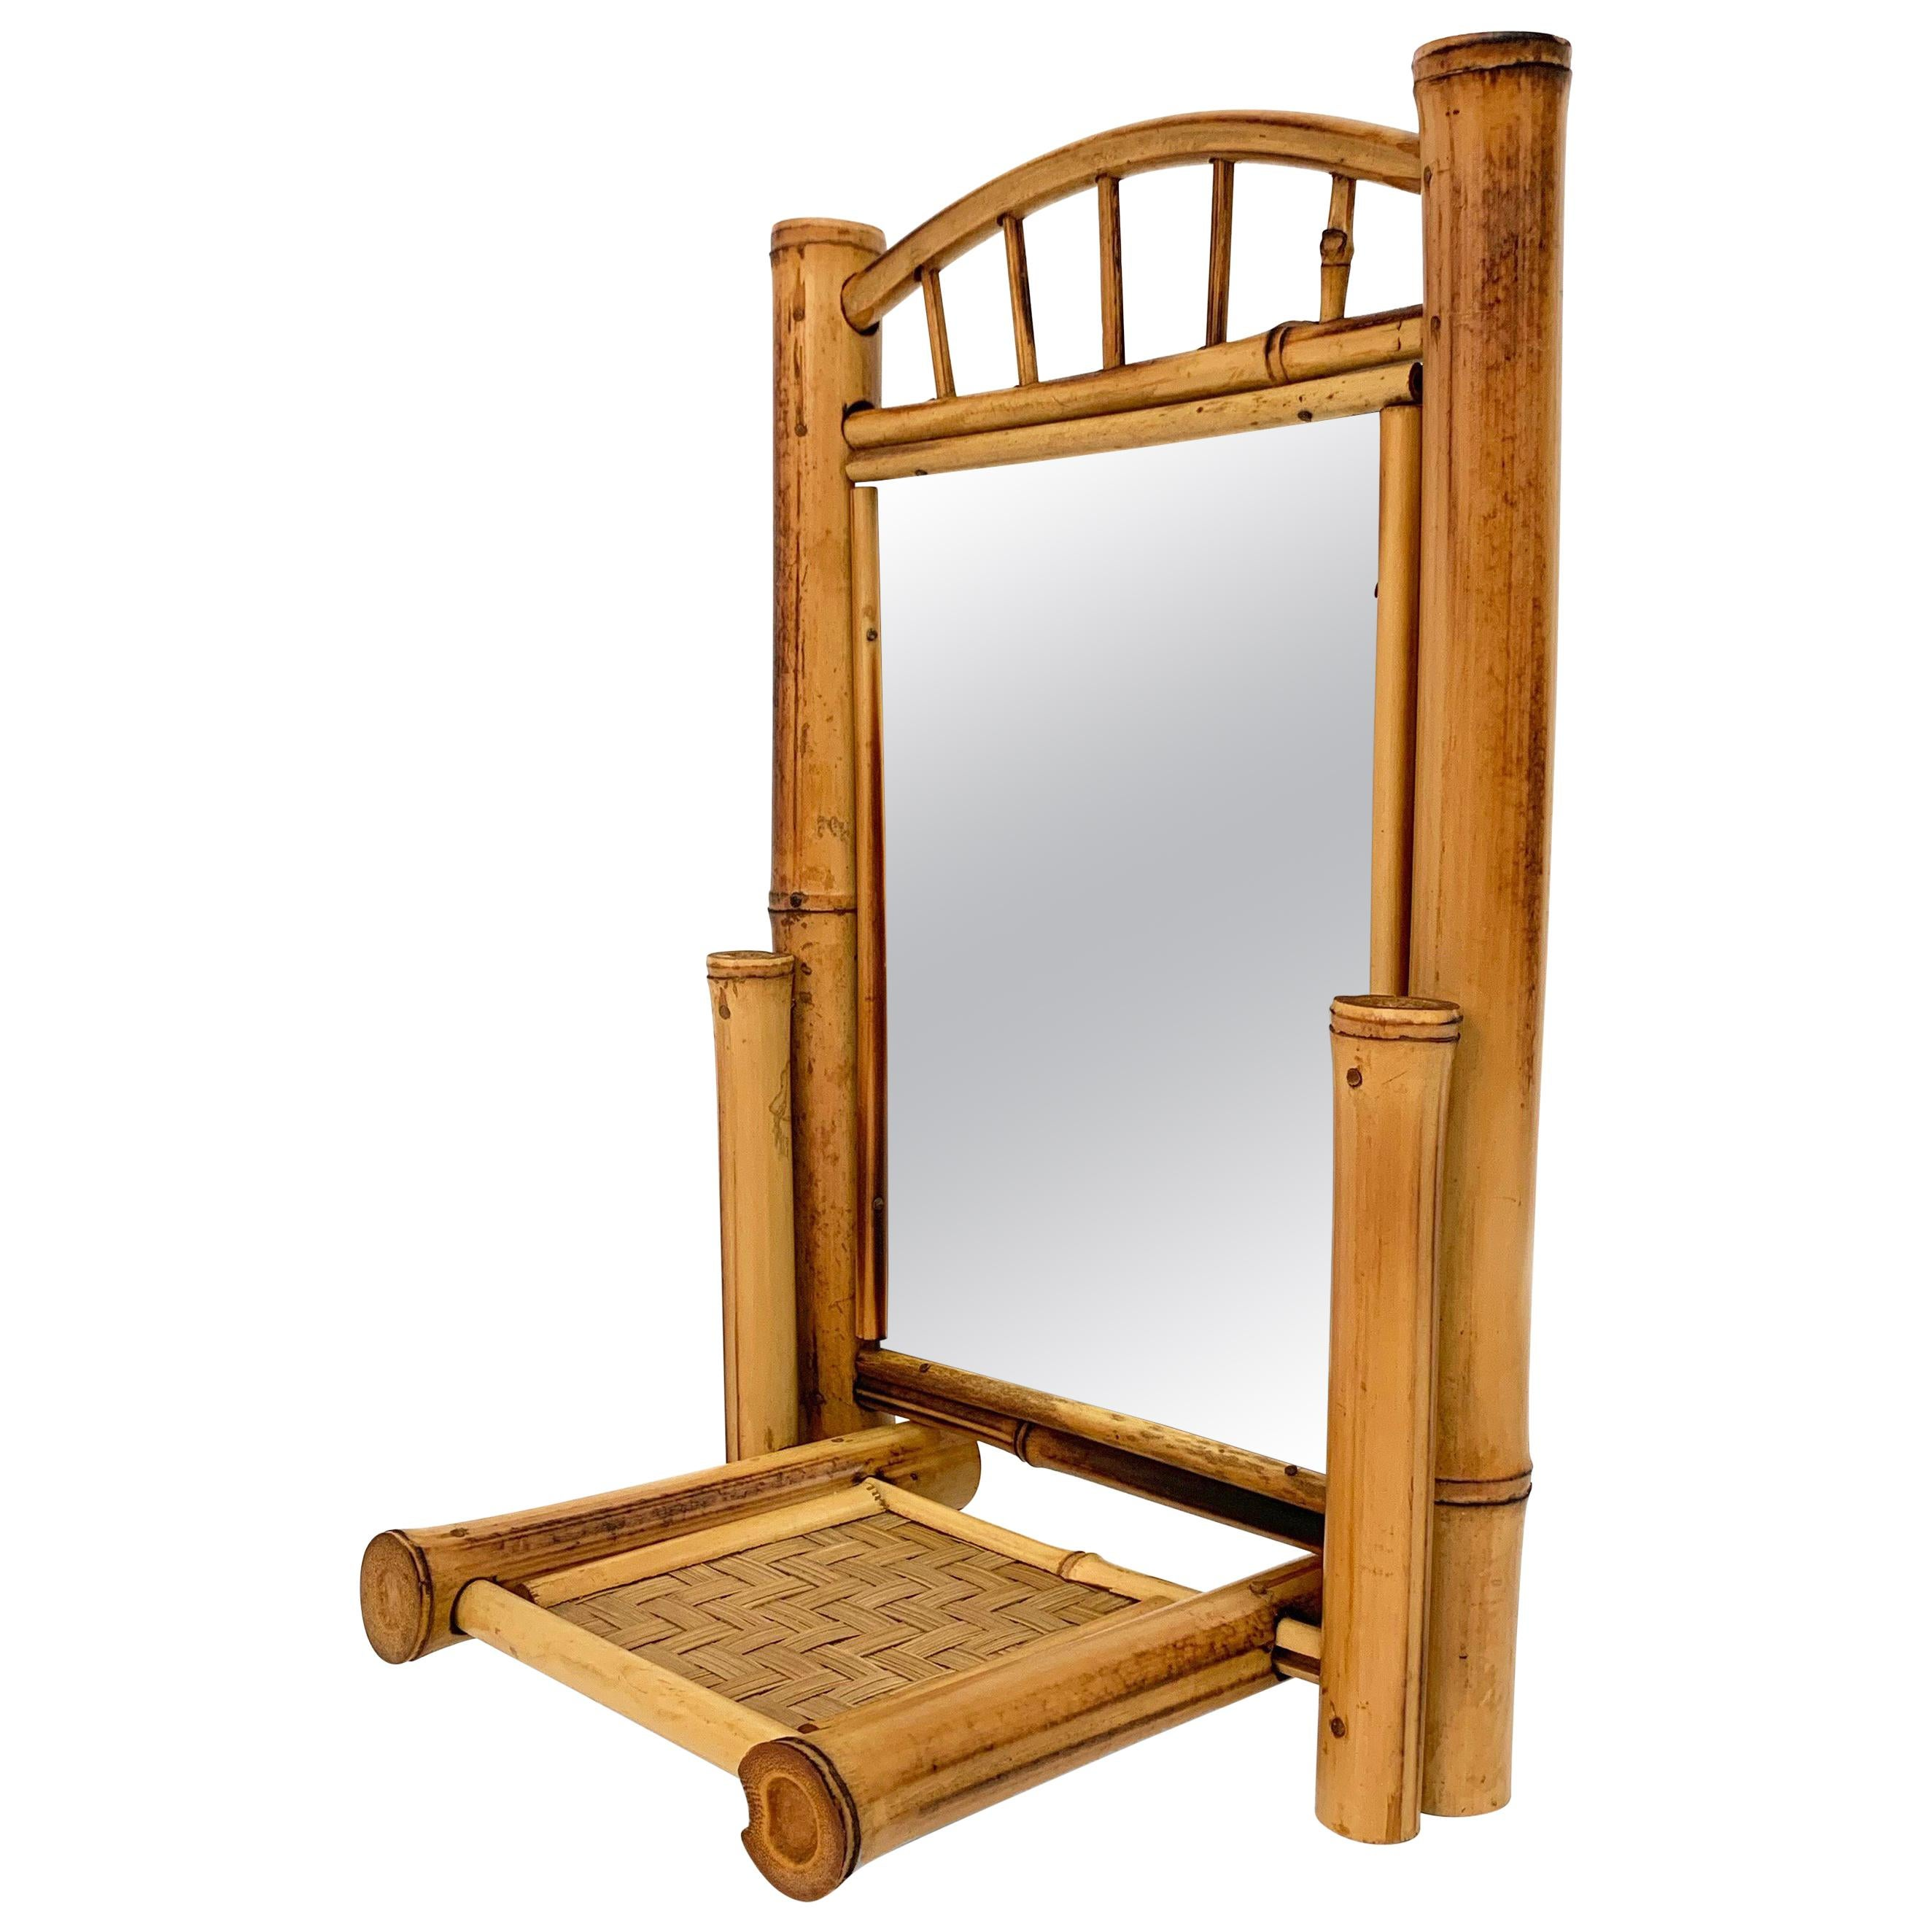 Liberty Table Mirror, Bamboo, Rattan and Wood, Foldable, France, 1920s